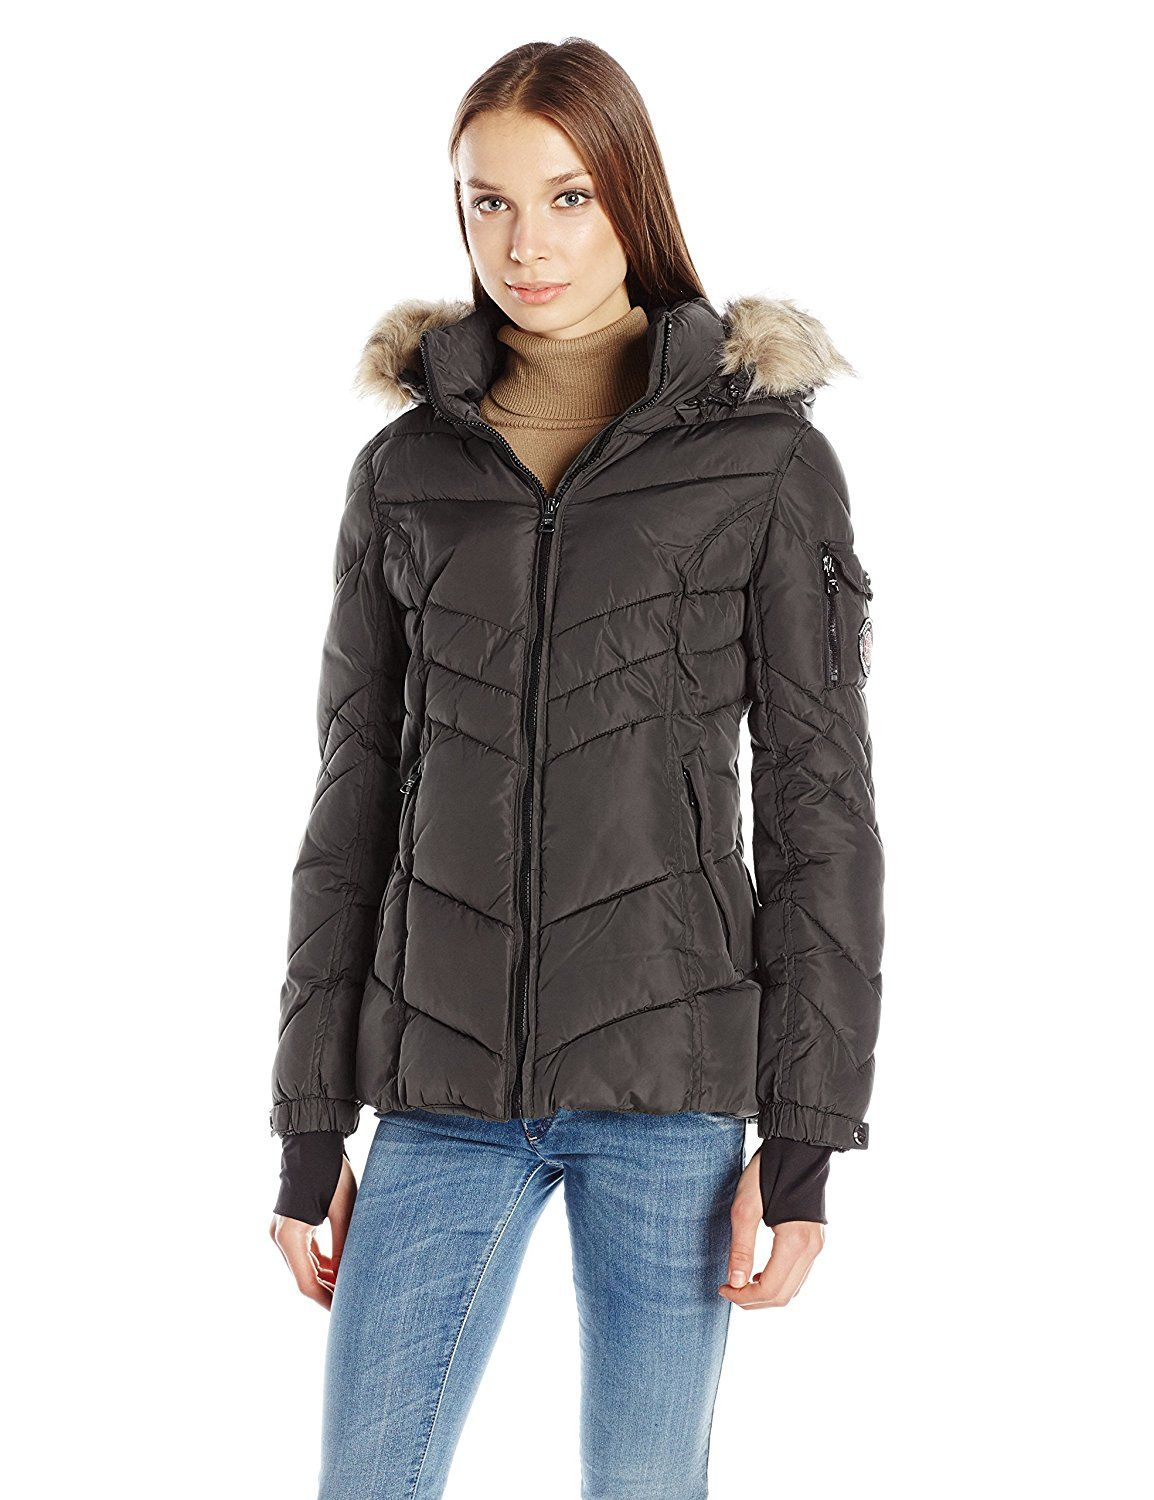 Madden Girl Women's Puffer Jacket >>> This is an Amazon